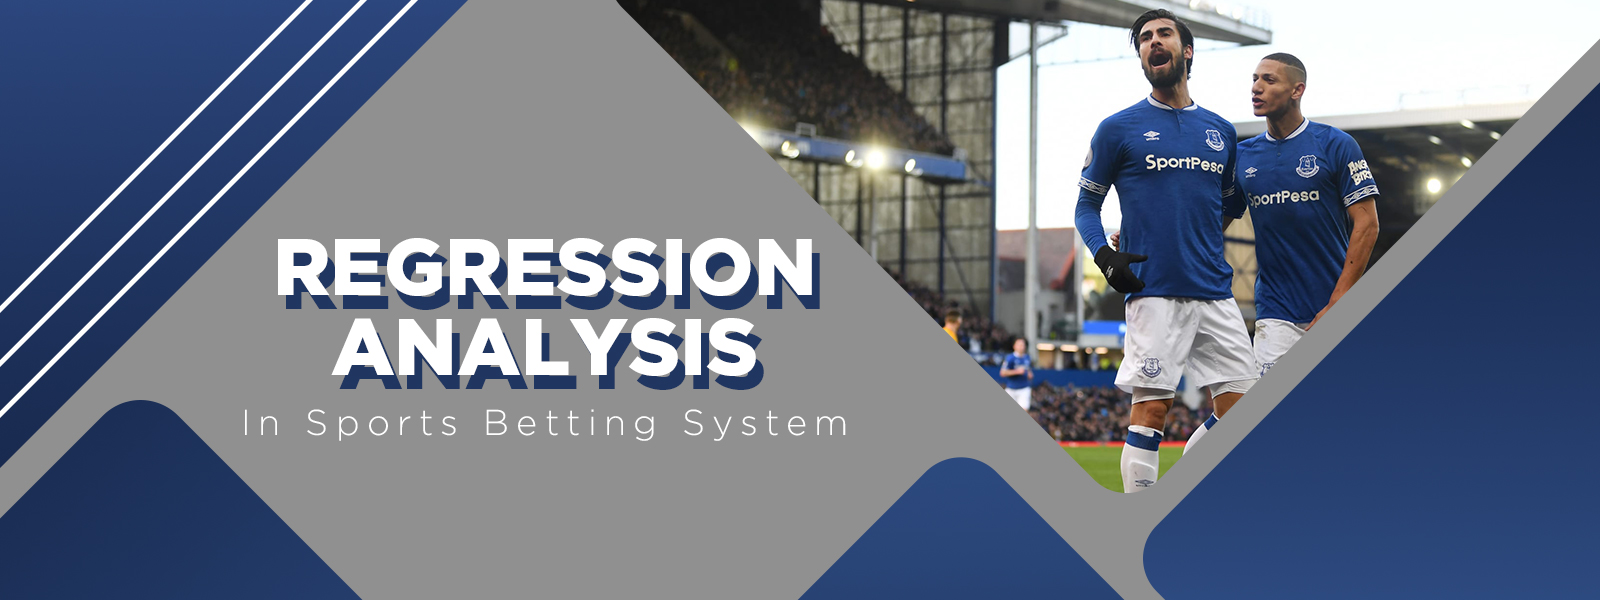 Regression Analysis In Sports Betting Systems